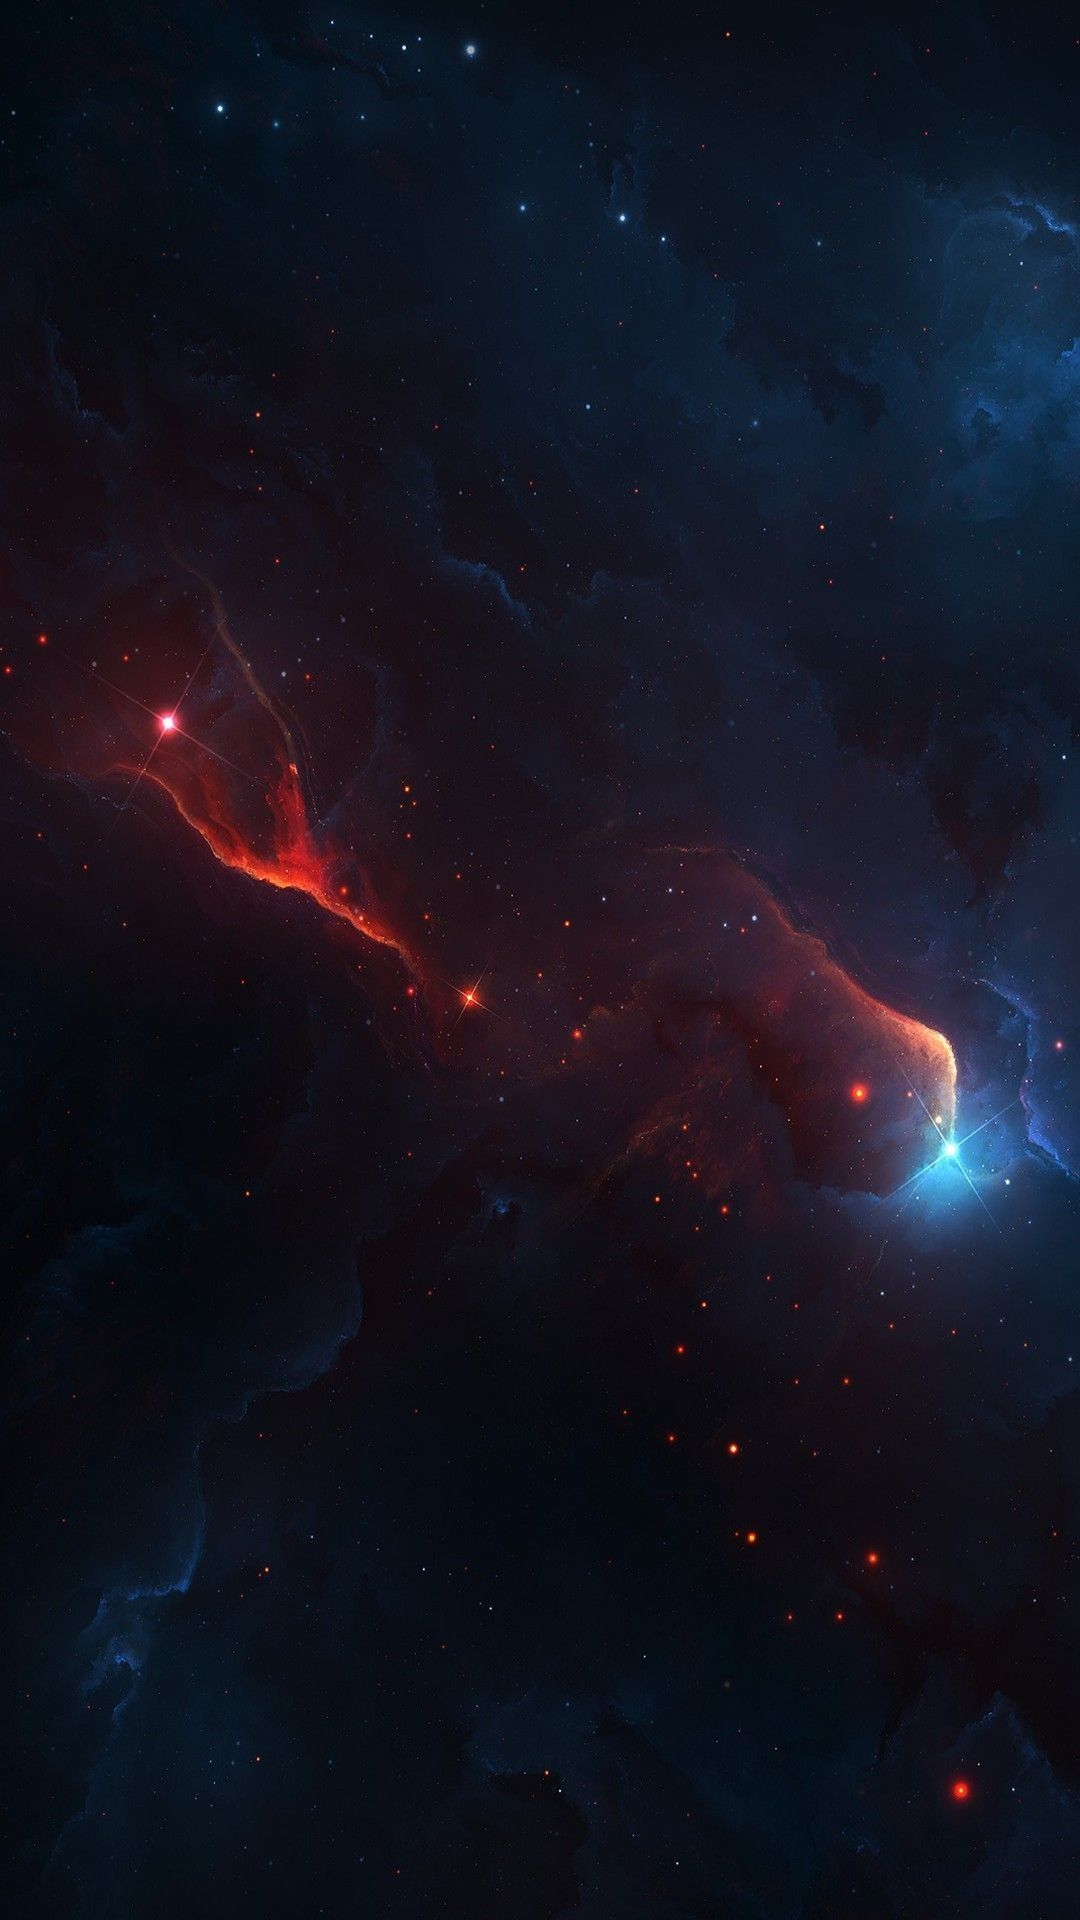 Science Aesthetic Wallpapers - Top Free Science Aesthetic ...